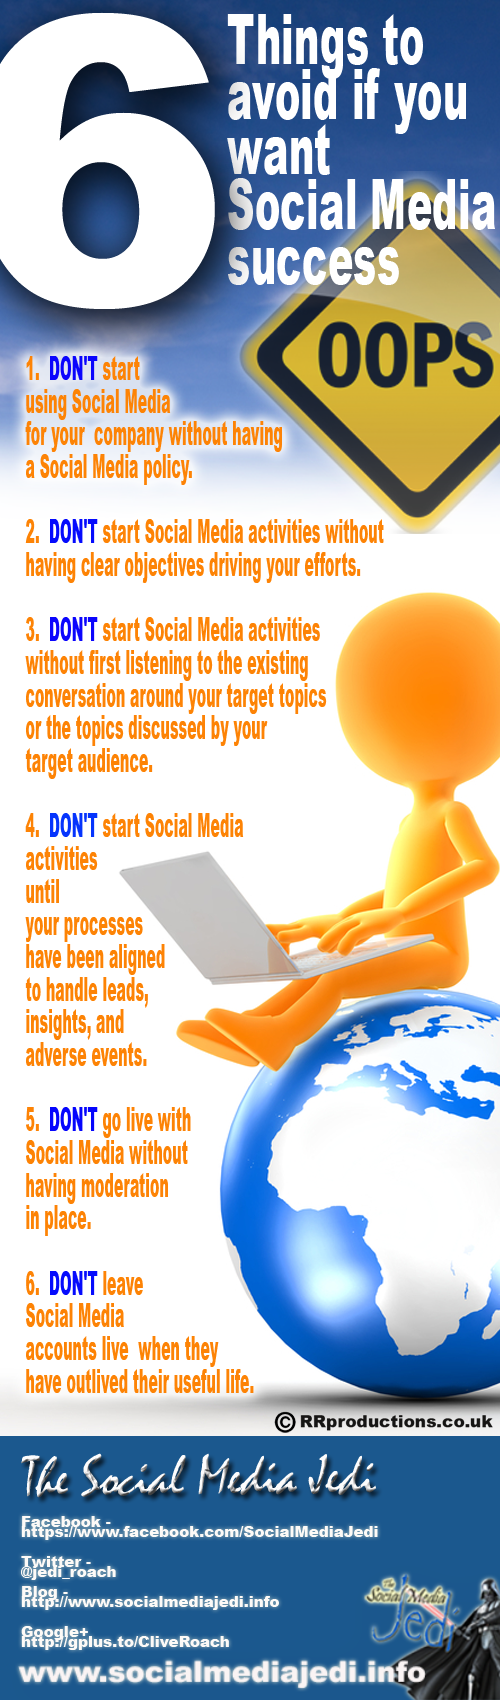 6 things to avoid if you want Social Media success